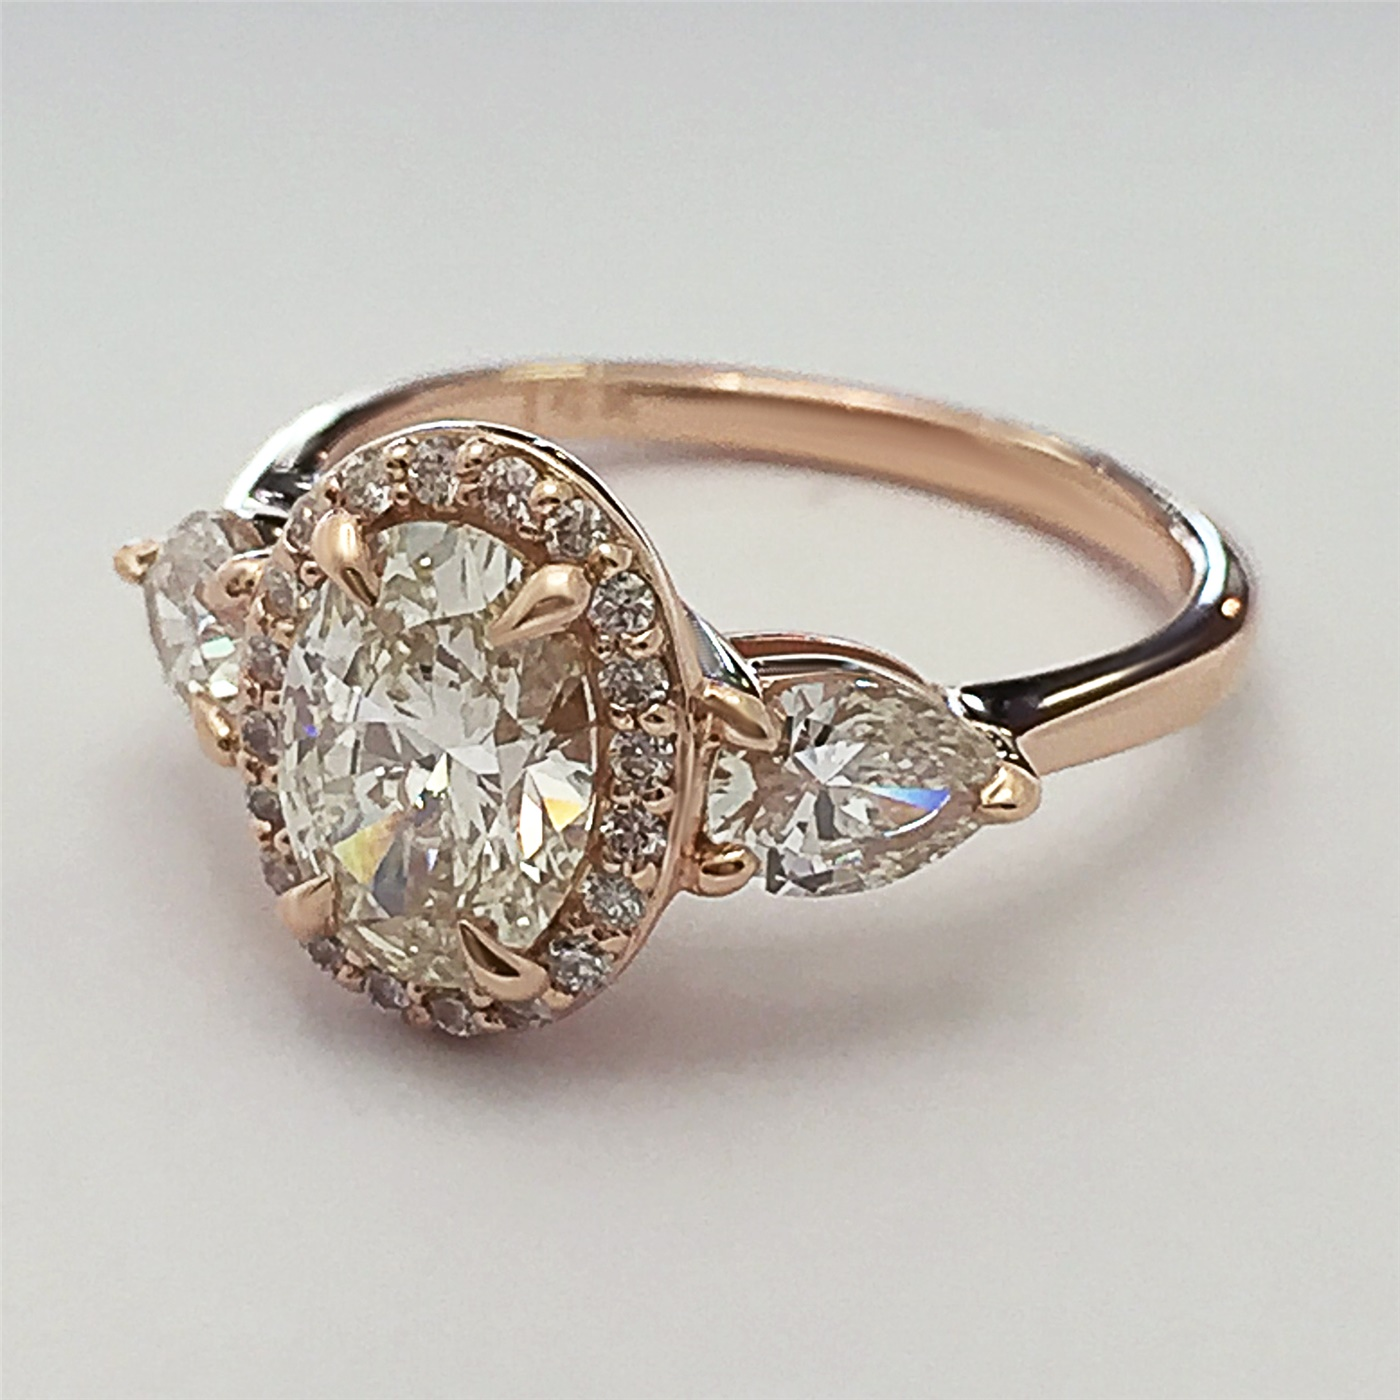 Engagement Rings No Stone: Oval Shaped Diamond Engagement Ring With Pear Shaped